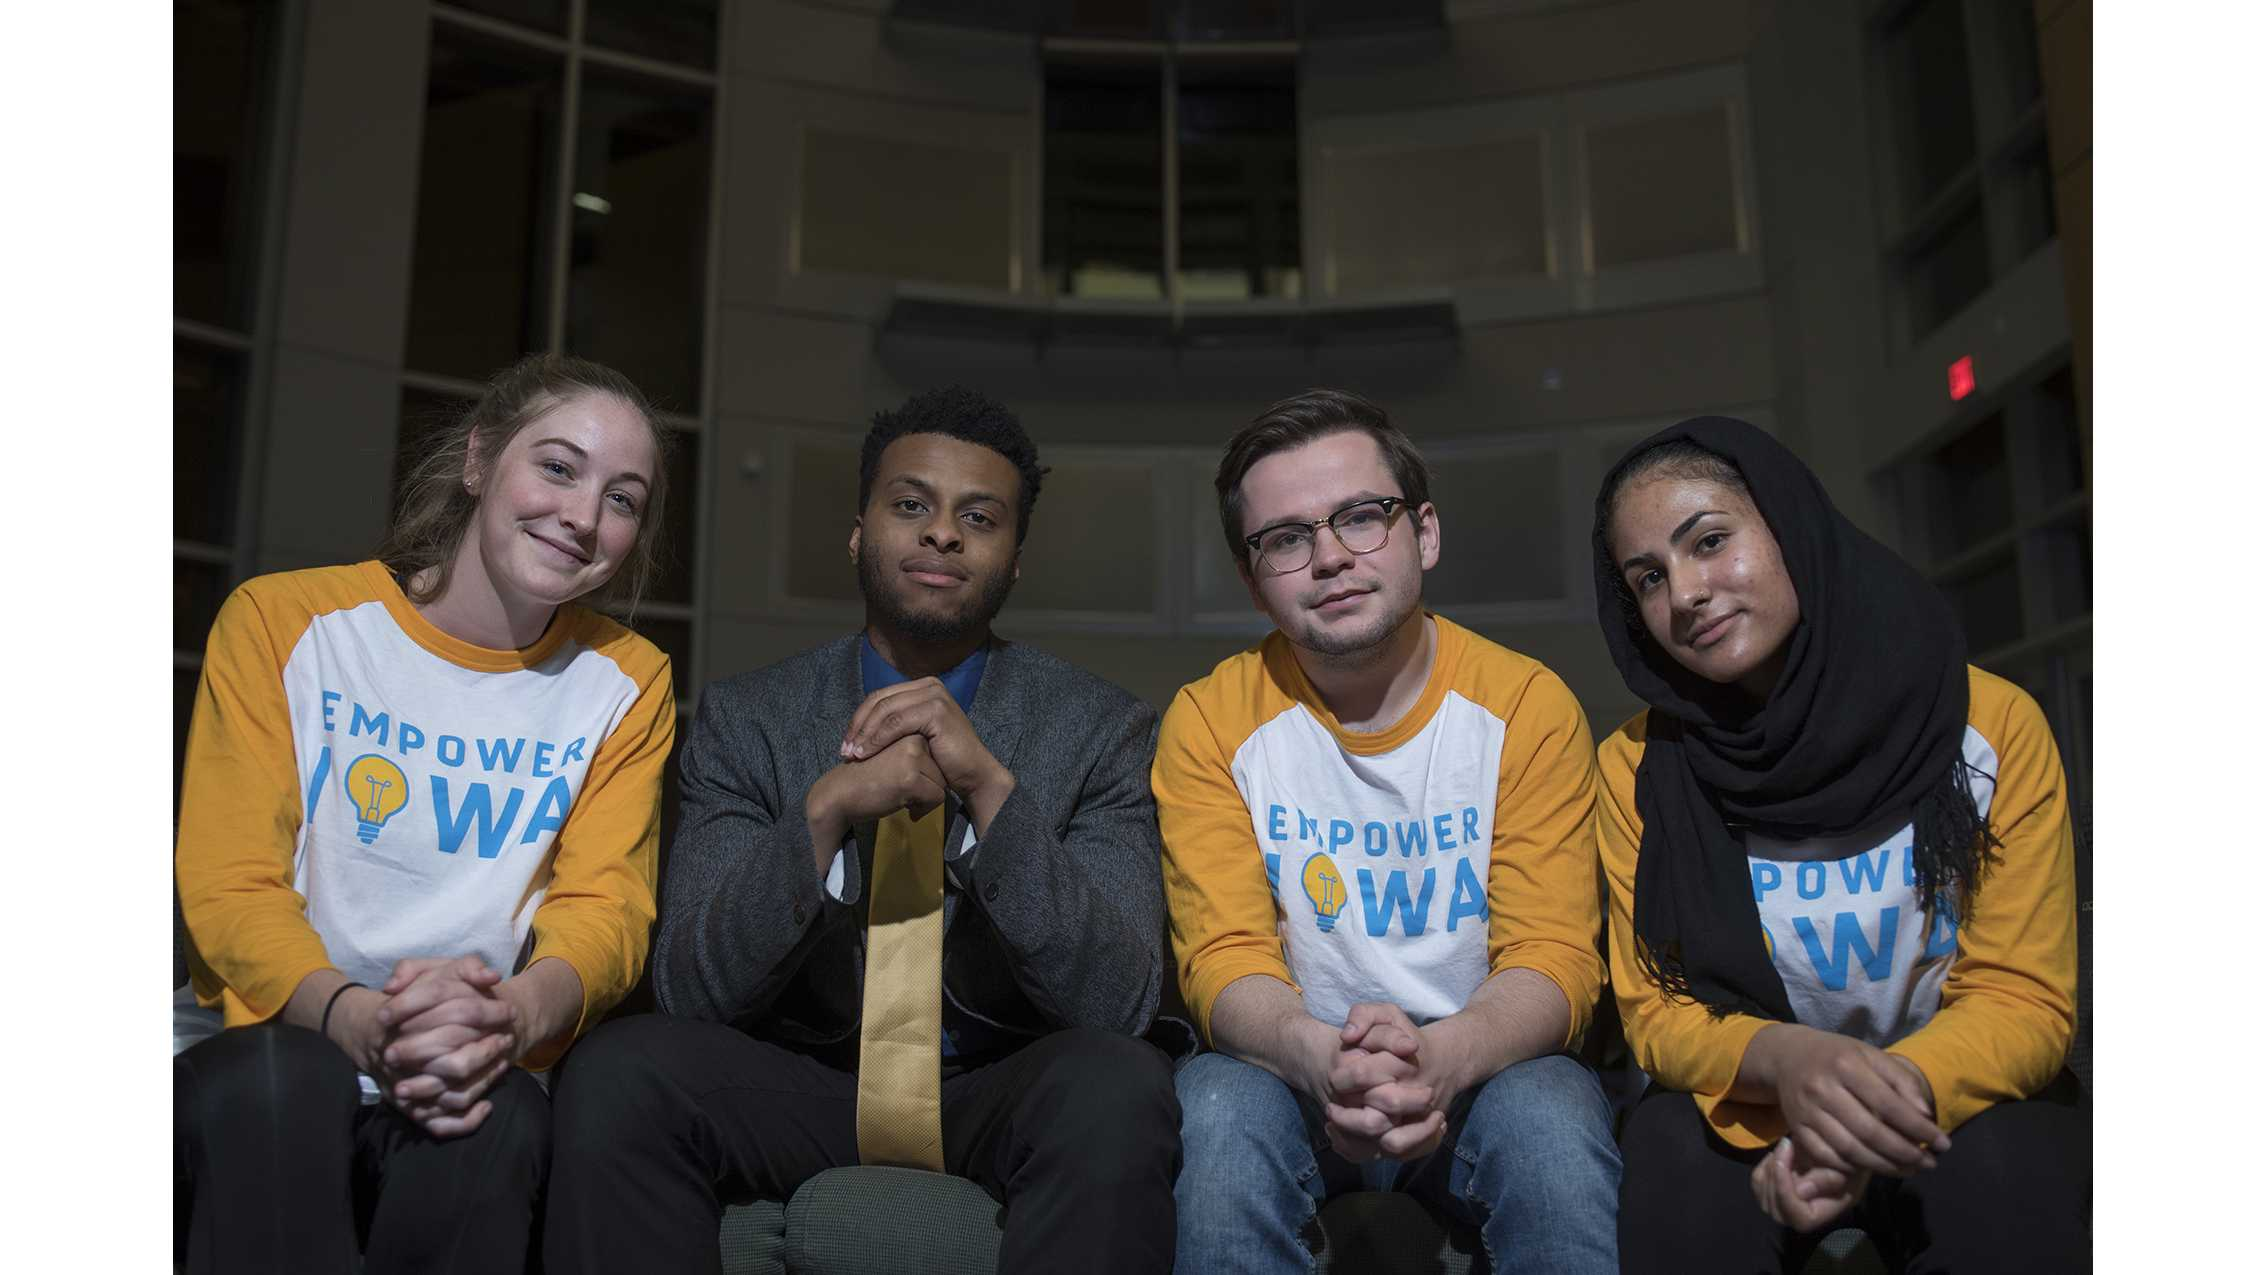 From left: Katherine Baer, Nate Robinson, Ben Nelson, and Zahra Aalabdulrasul, members of the UISG ticket Empower Iowa pose for portraits in the Adler Journalism Building on Monday, March 19, 2018. Empower Iowa is one of four groups on the ticket for the 2018-19 year UISG elections. (Ben Allan Smith/The Daily Iowan)